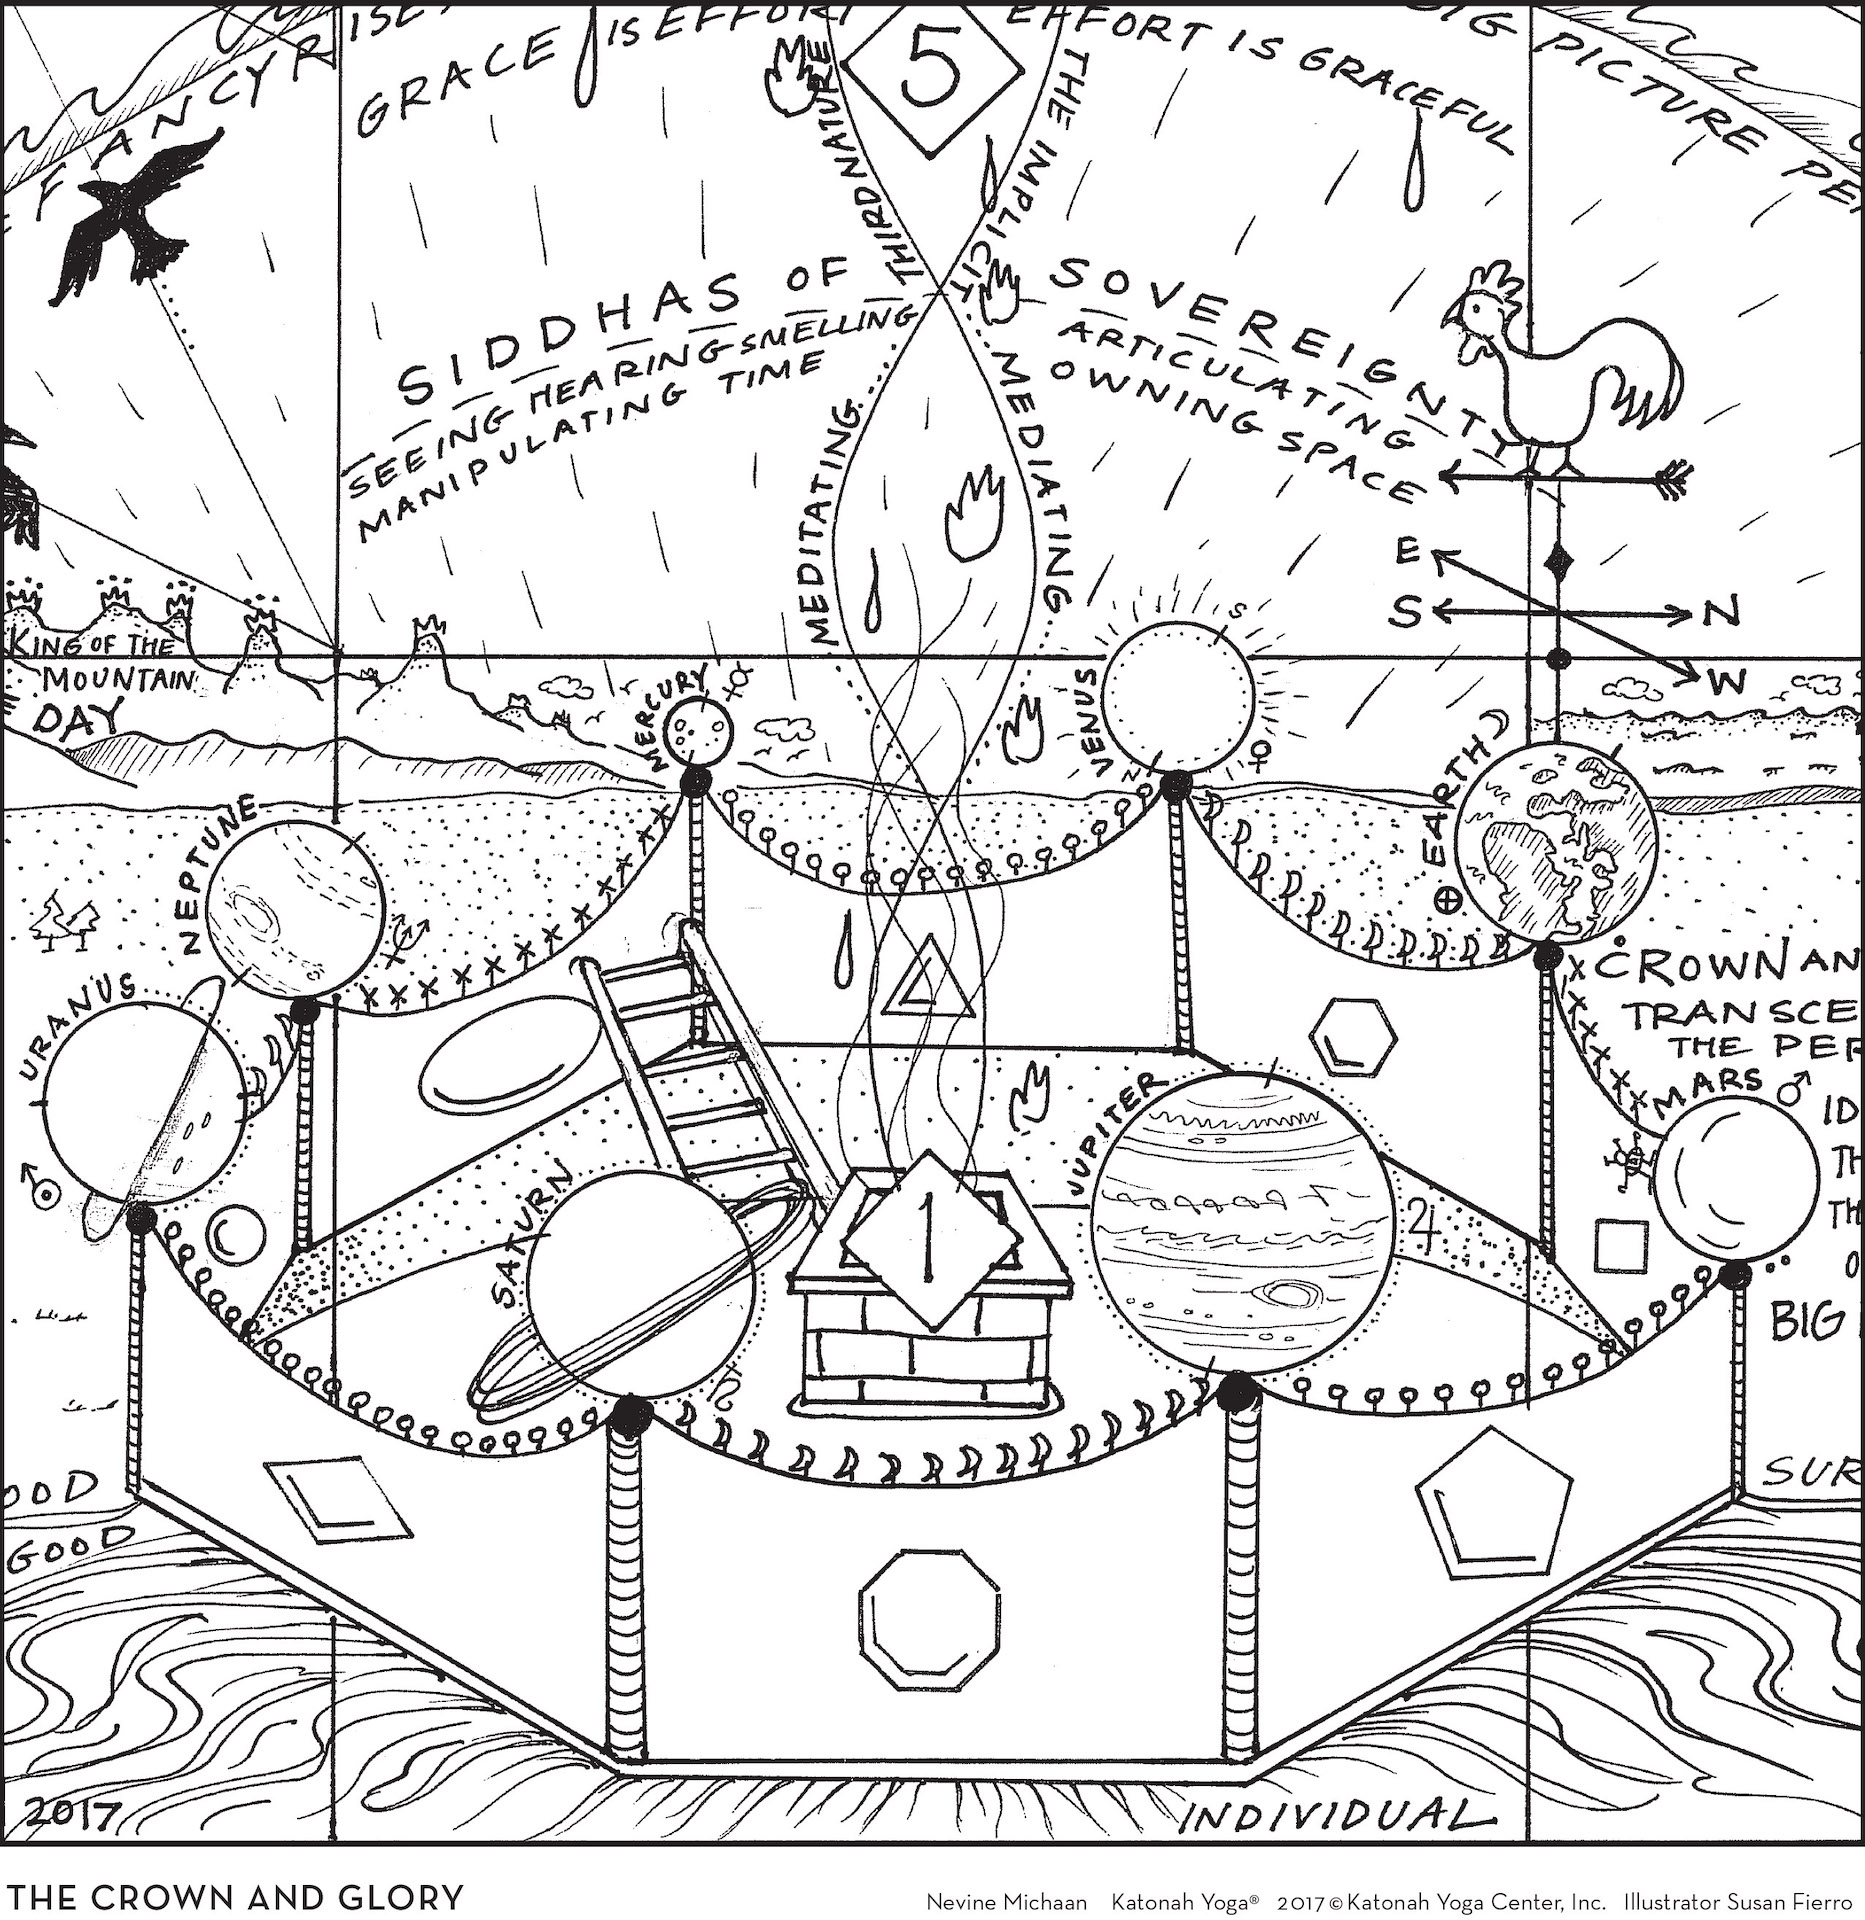 COSMIC AND COLLECTIVE MAPS